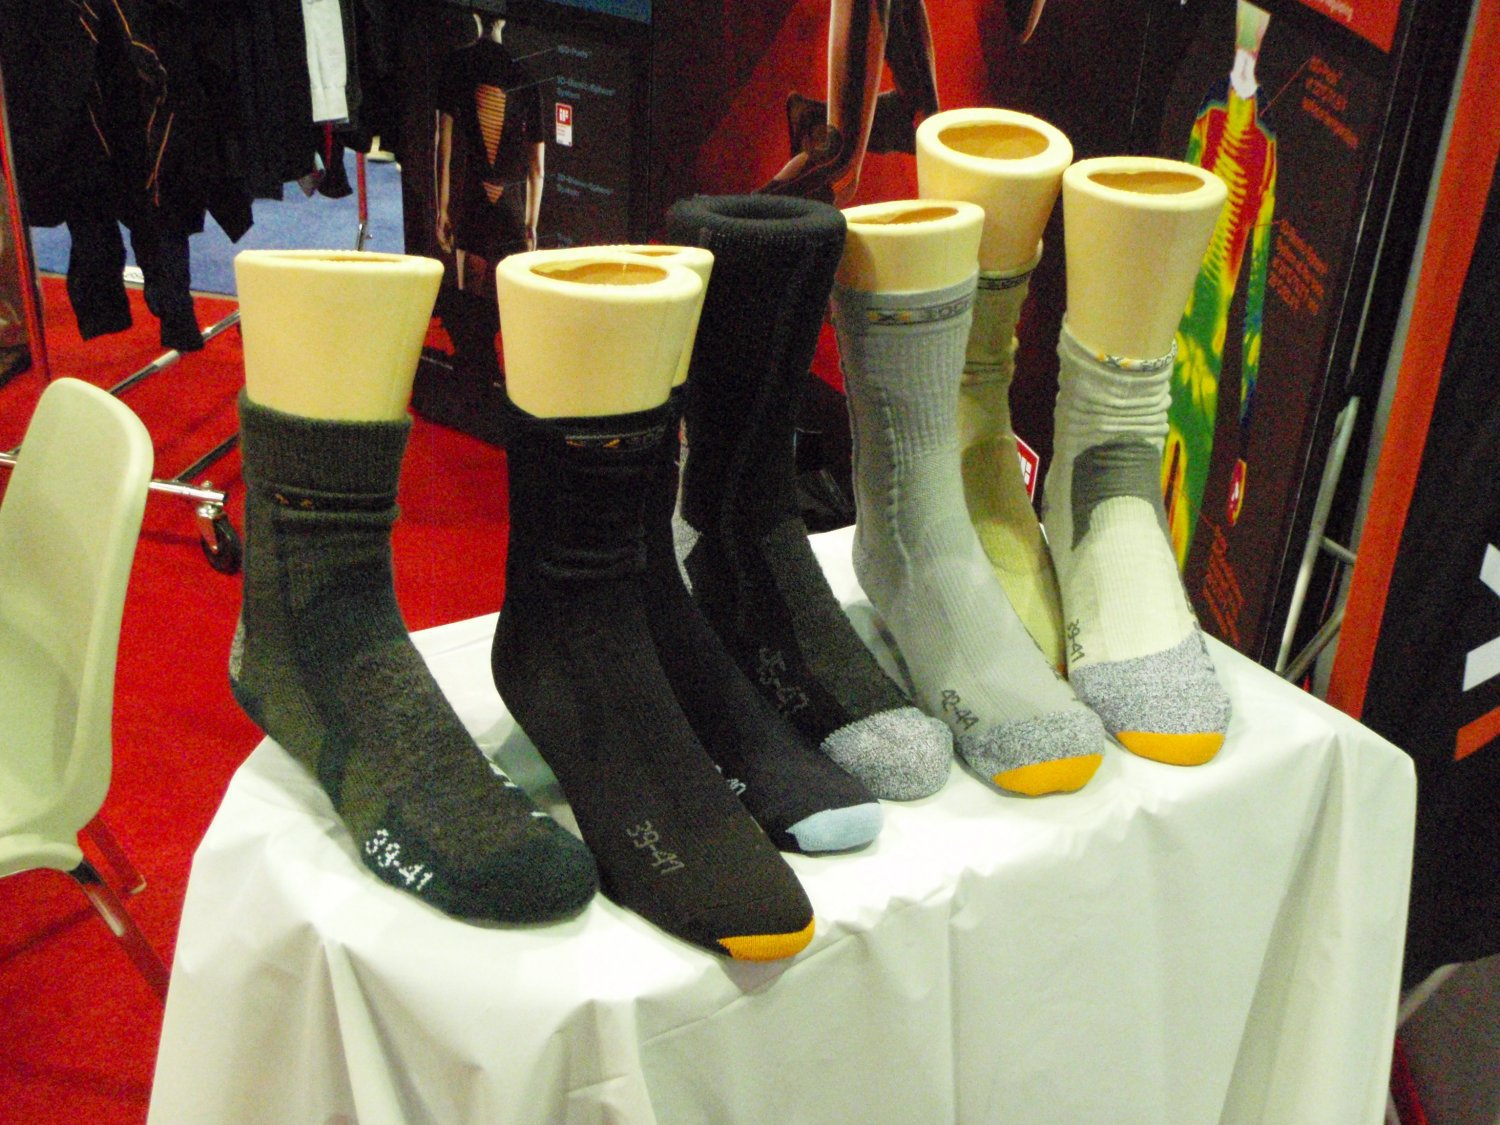 Lowa X Socks 1 <!  :en  >LOWA Tactical Boots Introduces LOWA Desert Mid Tactical Boot at SHOT Show 2009<!  :  >